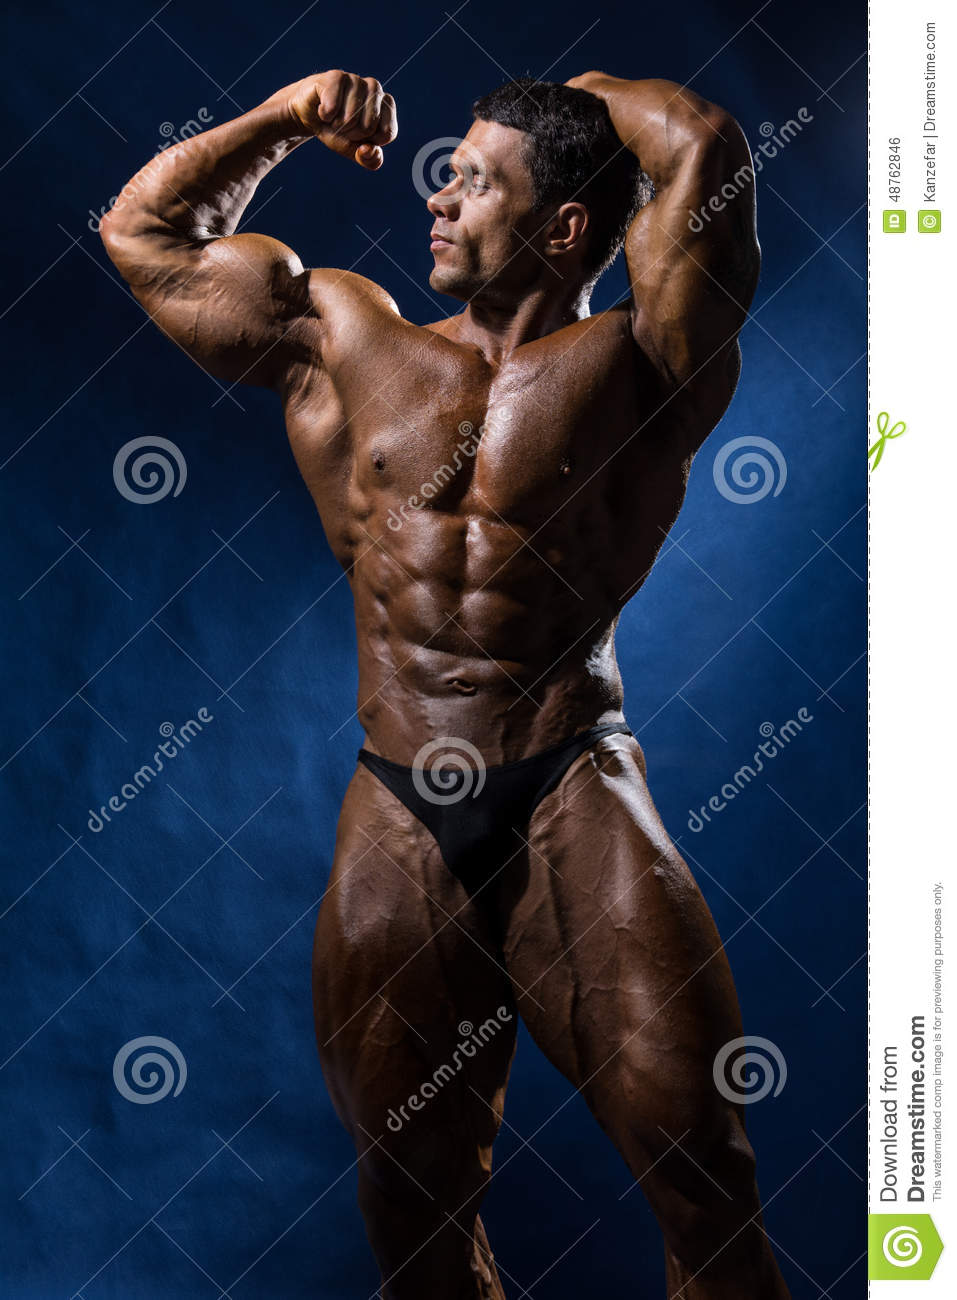 c984f77bcdd Sporty muscular man bodybuilder shows his body and strength on a blue  background.